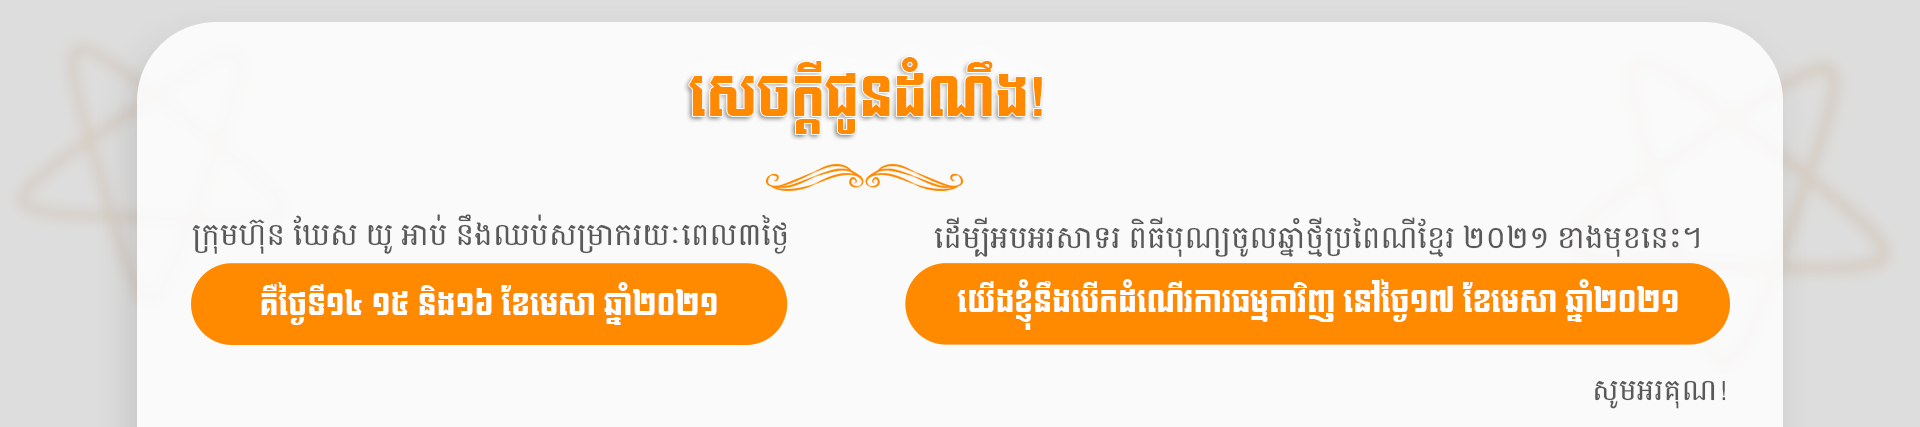 (English) Announcement for Khmer New Year 2021